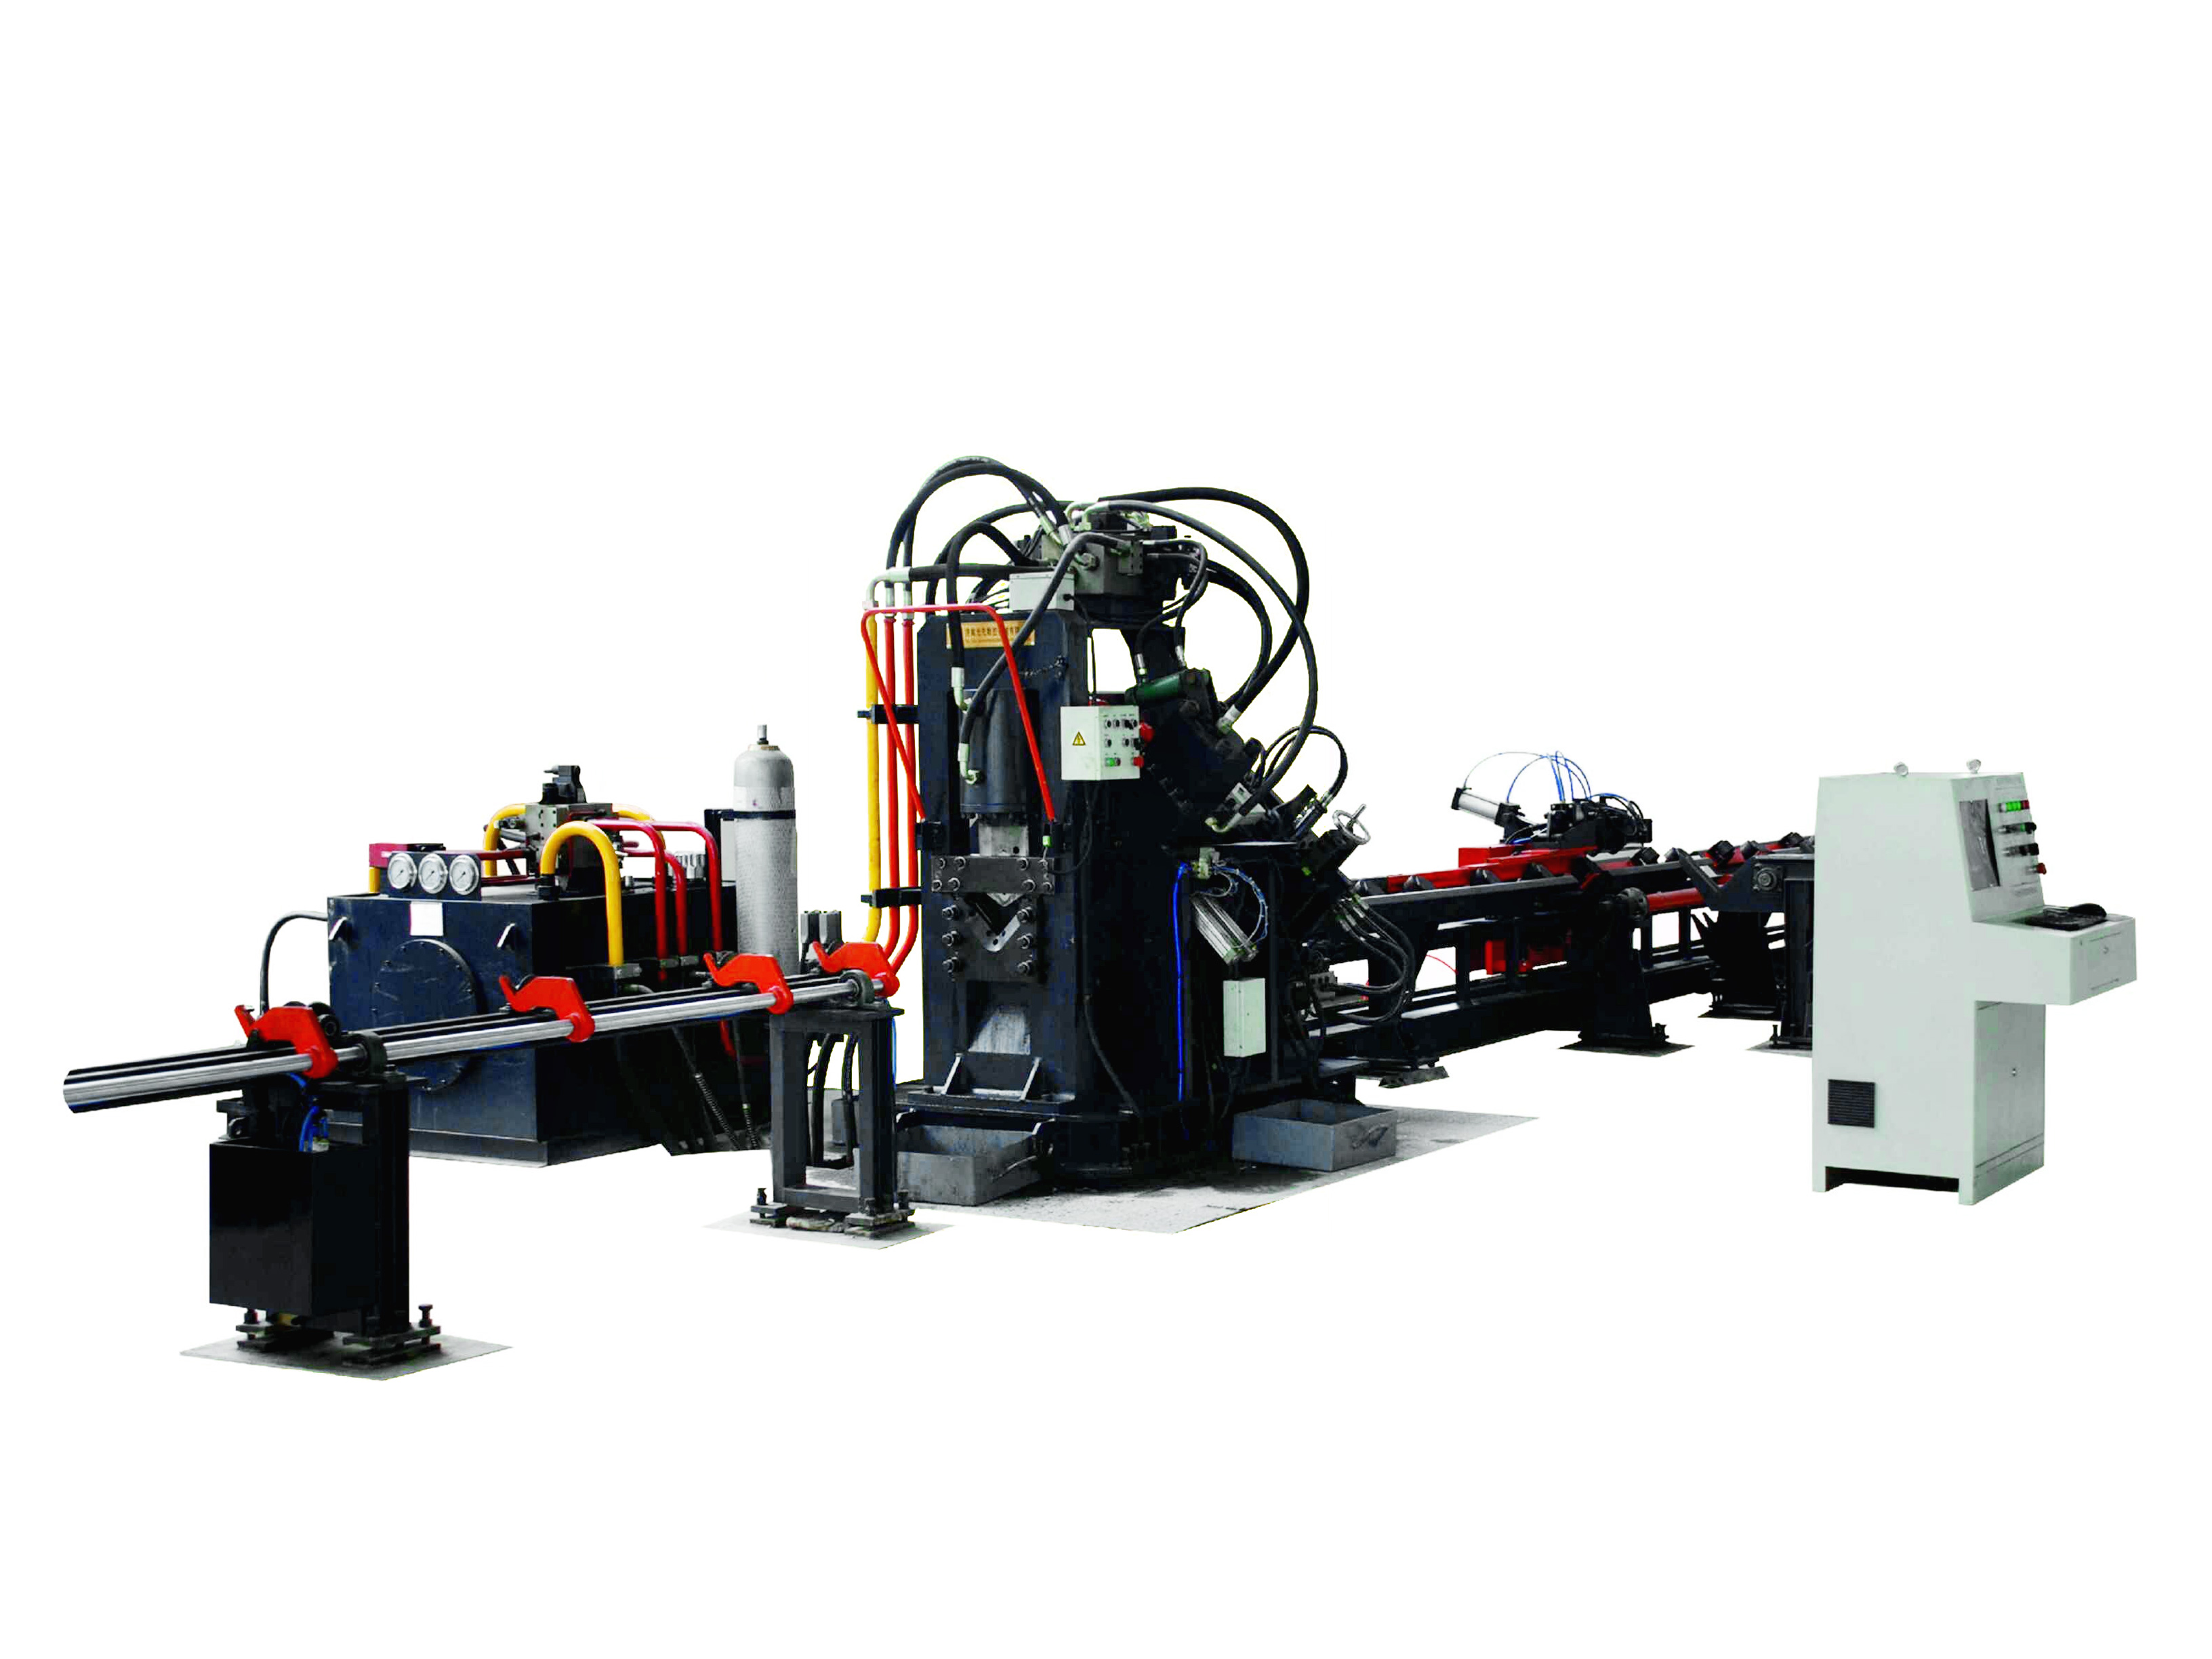 JNC125 series CNC angle steel punching and cutting production line